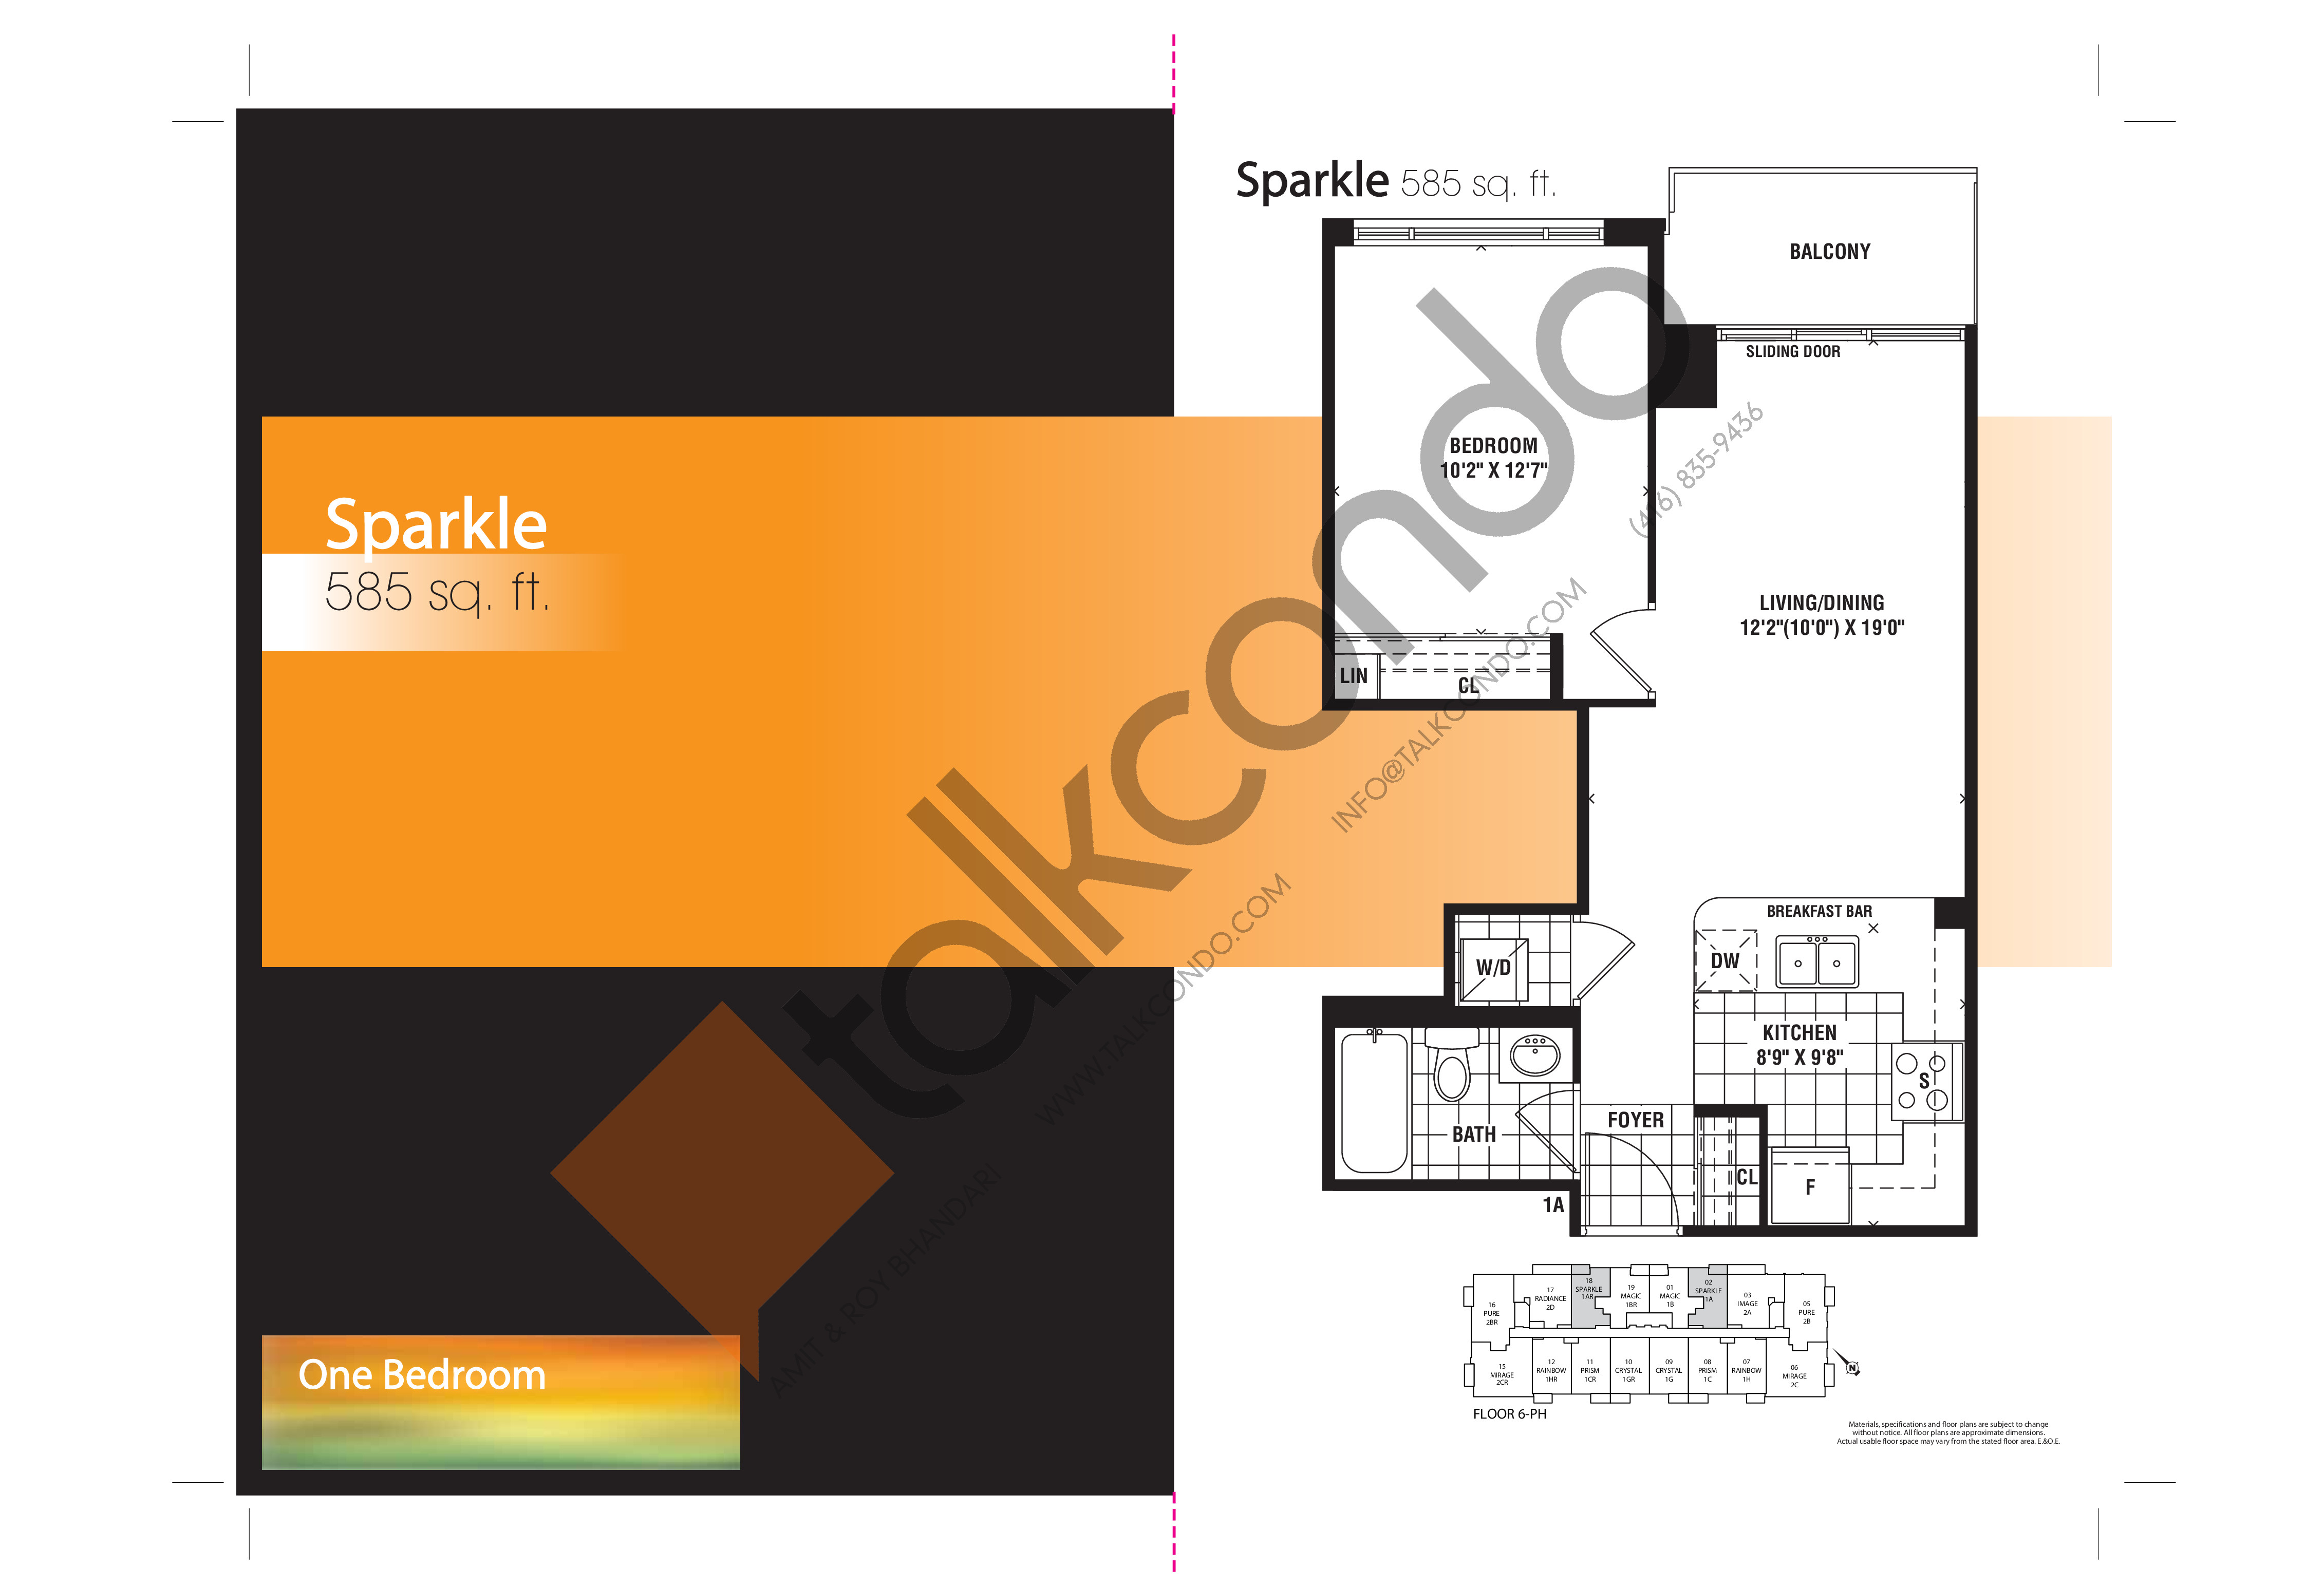 Sparkle Floor Plan at Mirage Condos - 585 sq.ft